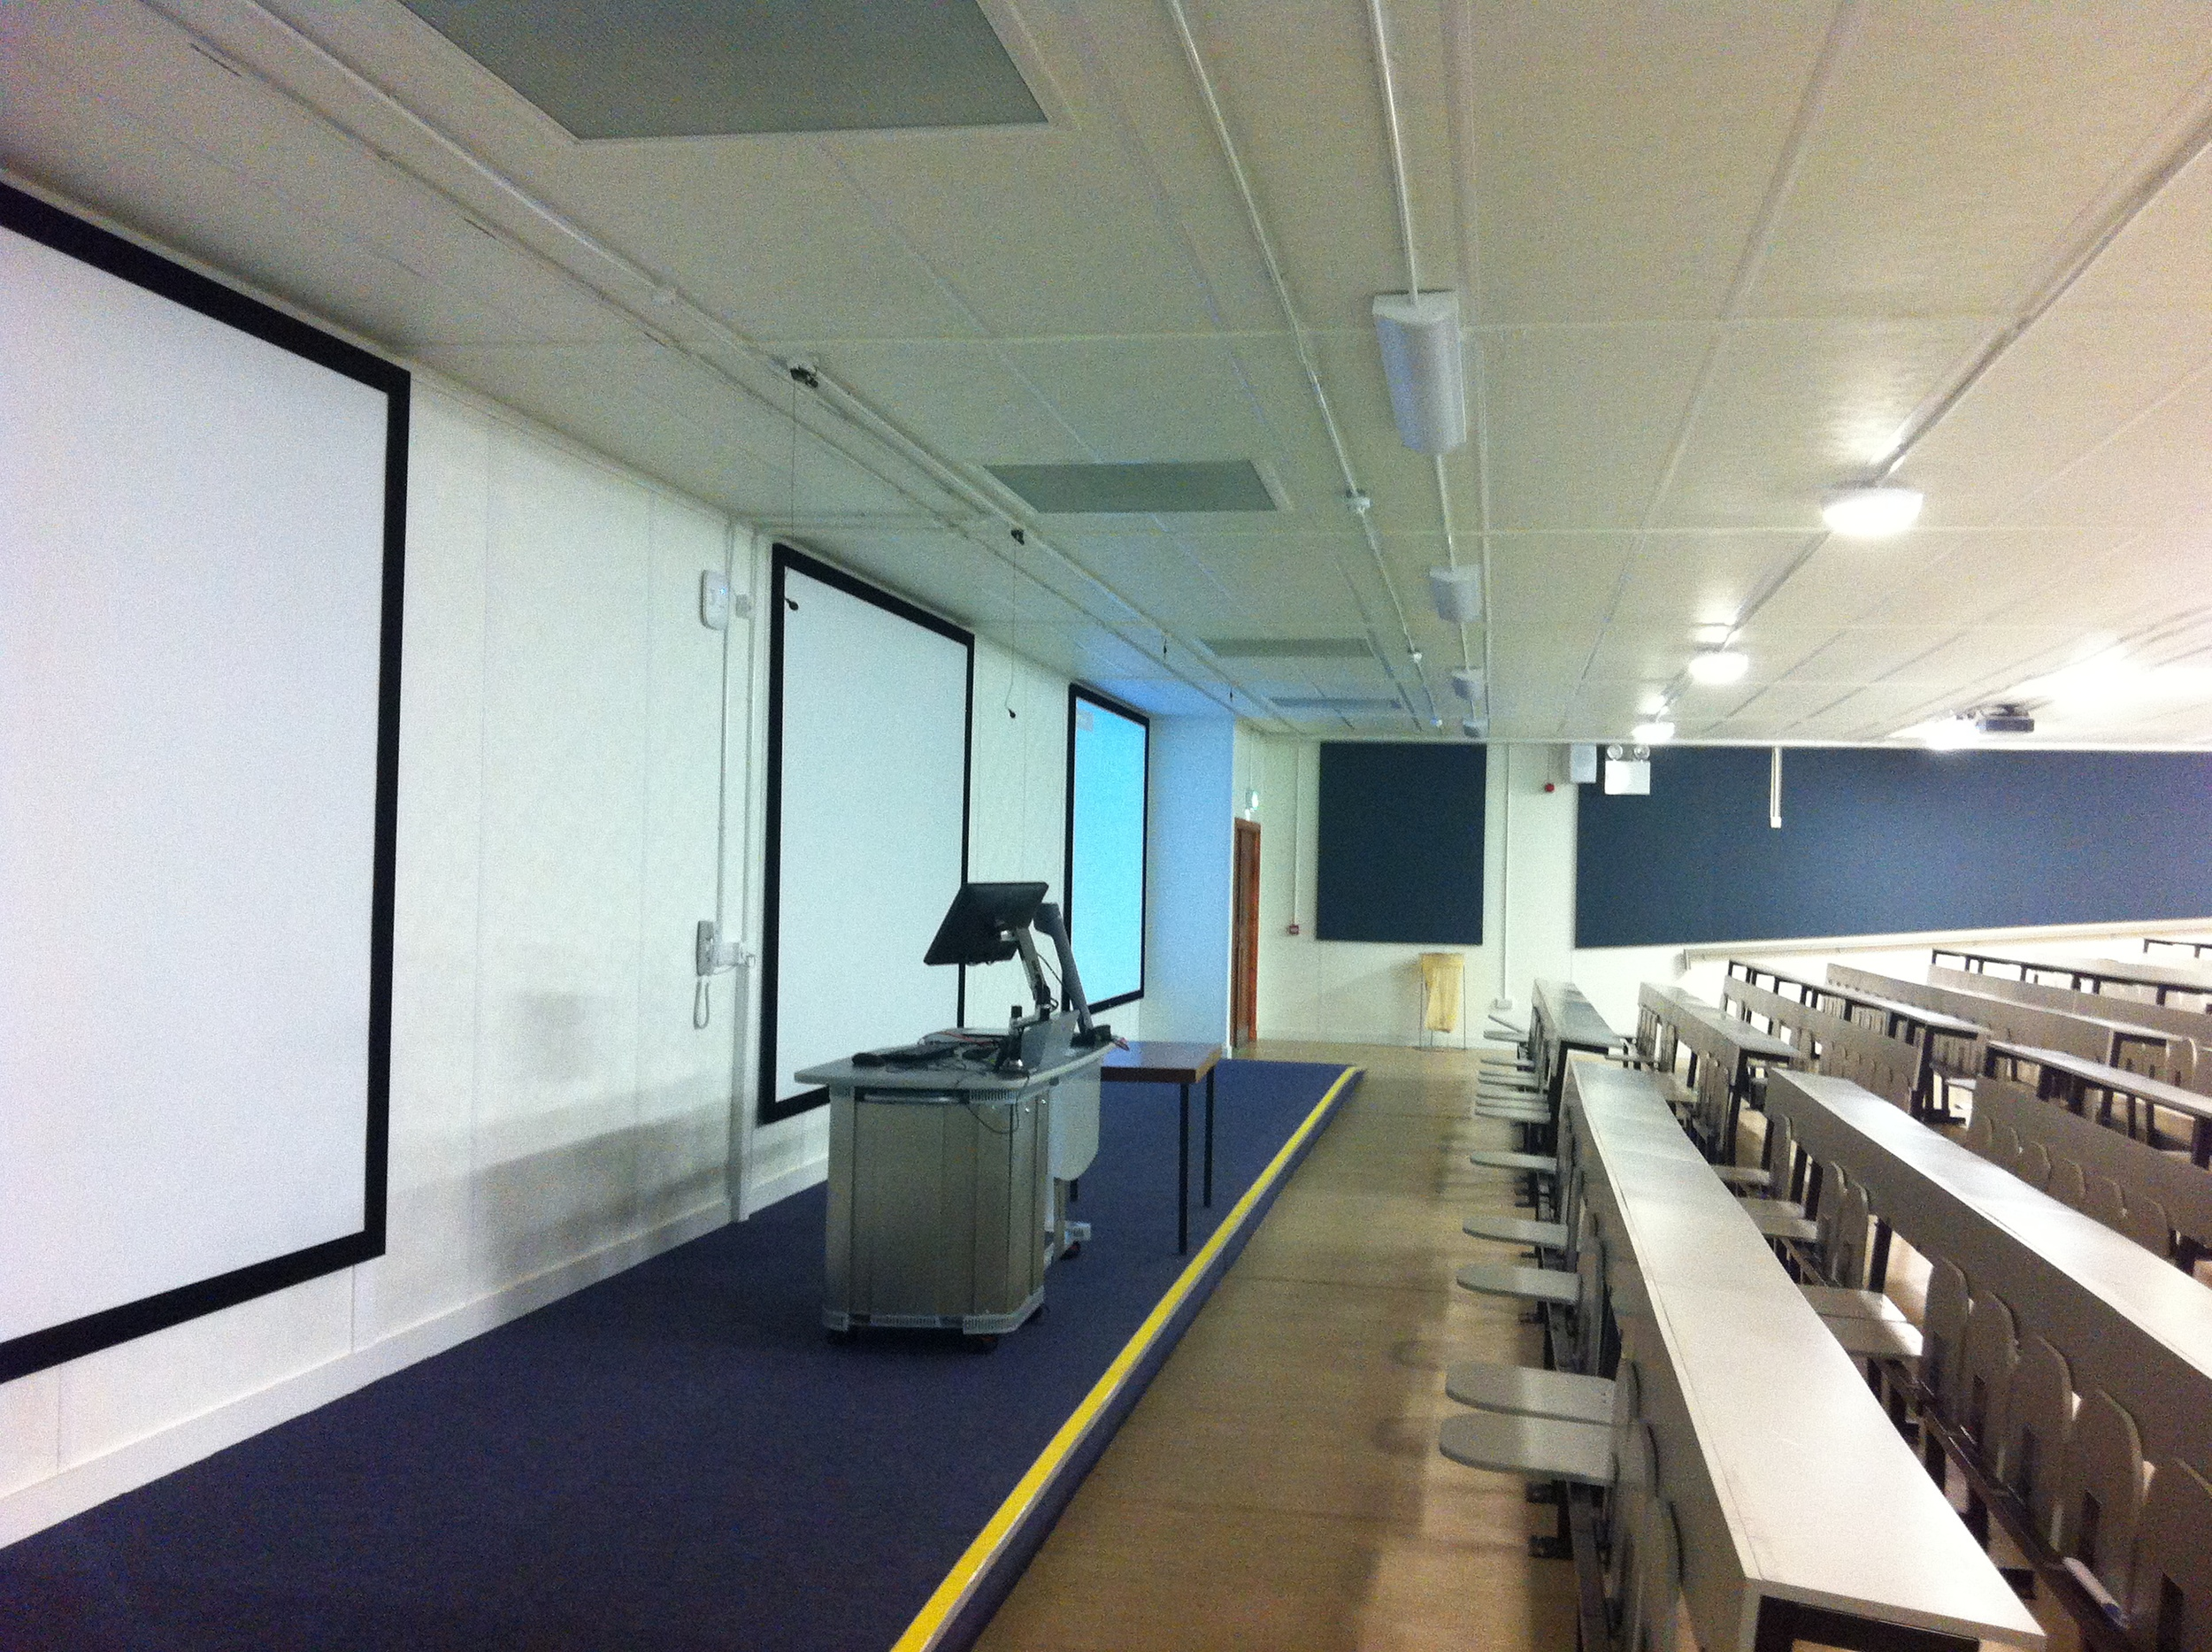 ucd-lecture-theatre-6.jpg